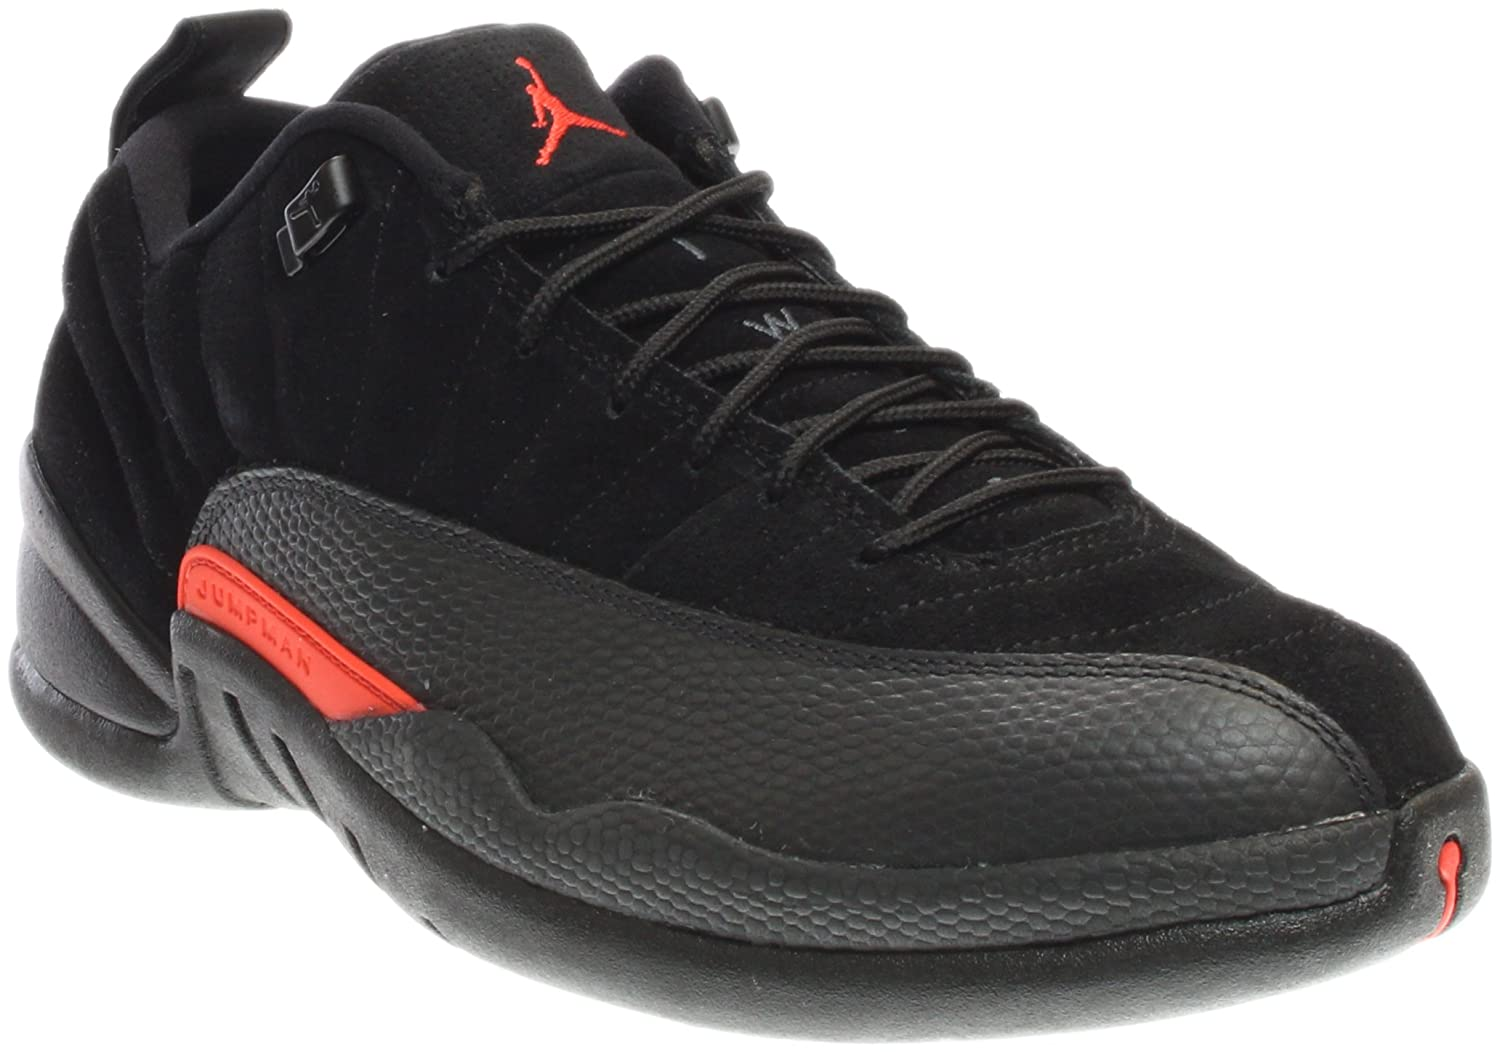 online store 64ebc 0e97d Air Jordan 12 Retro Low Men's Basketball Shoes Black/Max Orange-Anthracite  308317-003 (12 D(M) US)